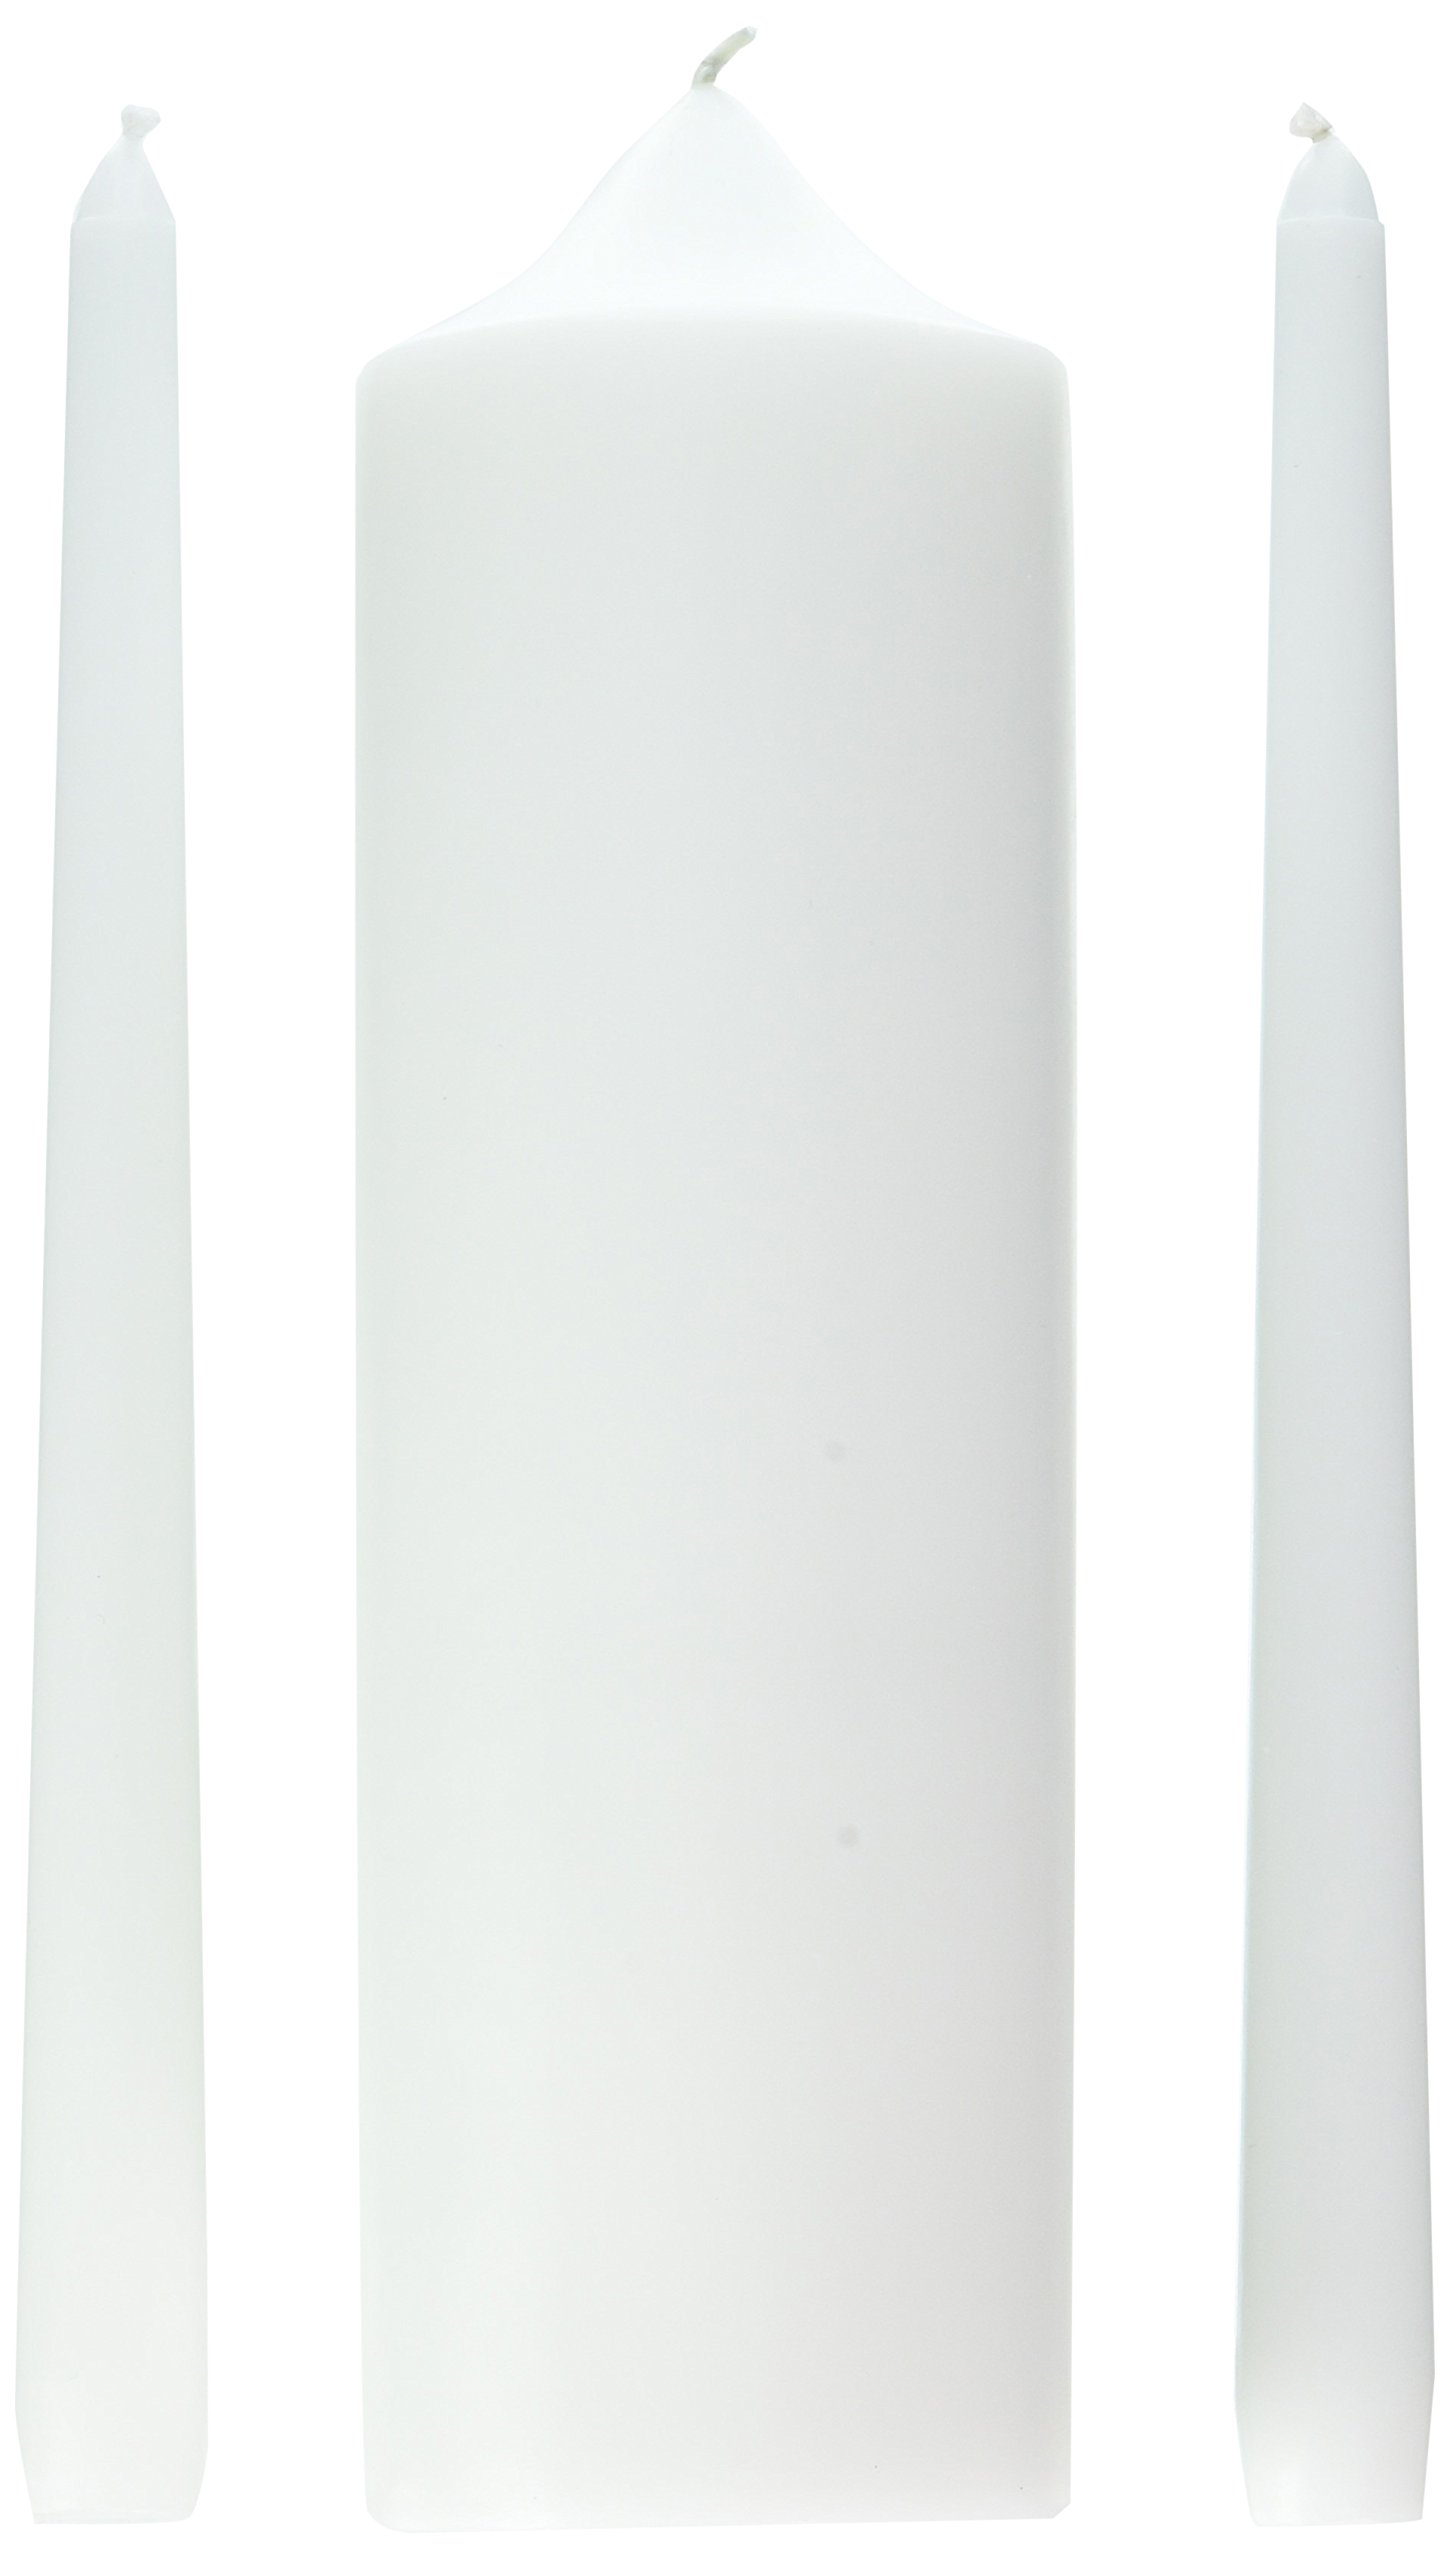 Wedding Accessories 3-Piece Unity Candle Set, 10-Inch, White by Wedding Accessories